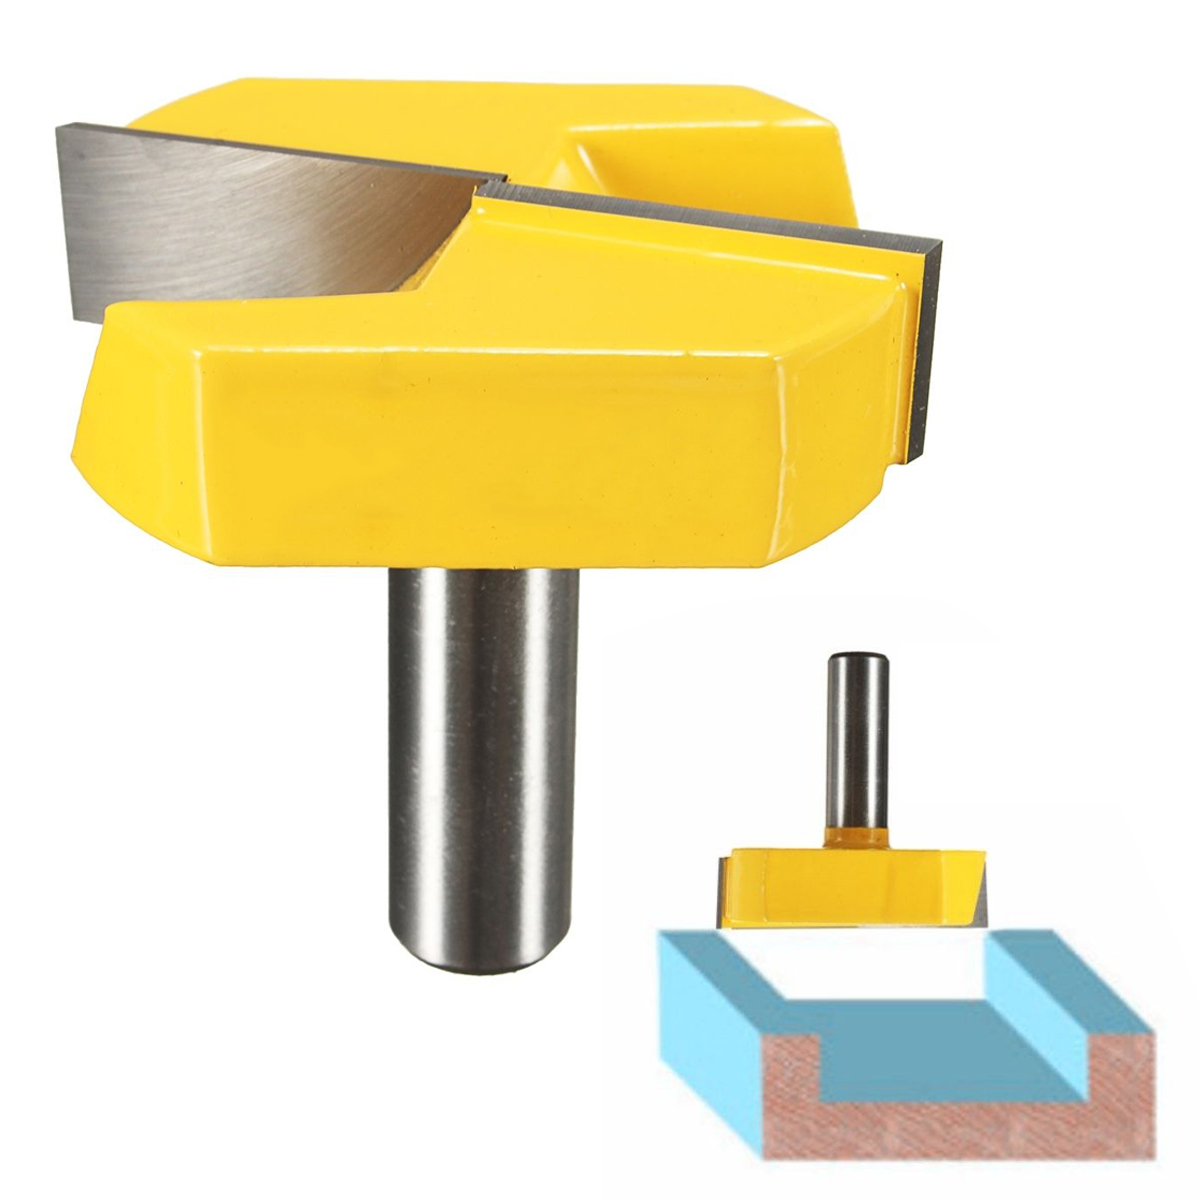 Strong 1/2 Shank 2-1/4 Diameter Bottom Cleaning Router Bit Mayitr Woodworking Router Bits Milling Cutter for MDF Solid Wood 1pc strong mayitr 1 2 shank 2 1 4 dia bottom cleaning router bit high grade carbide woodworking milling cutter mdf wood tool